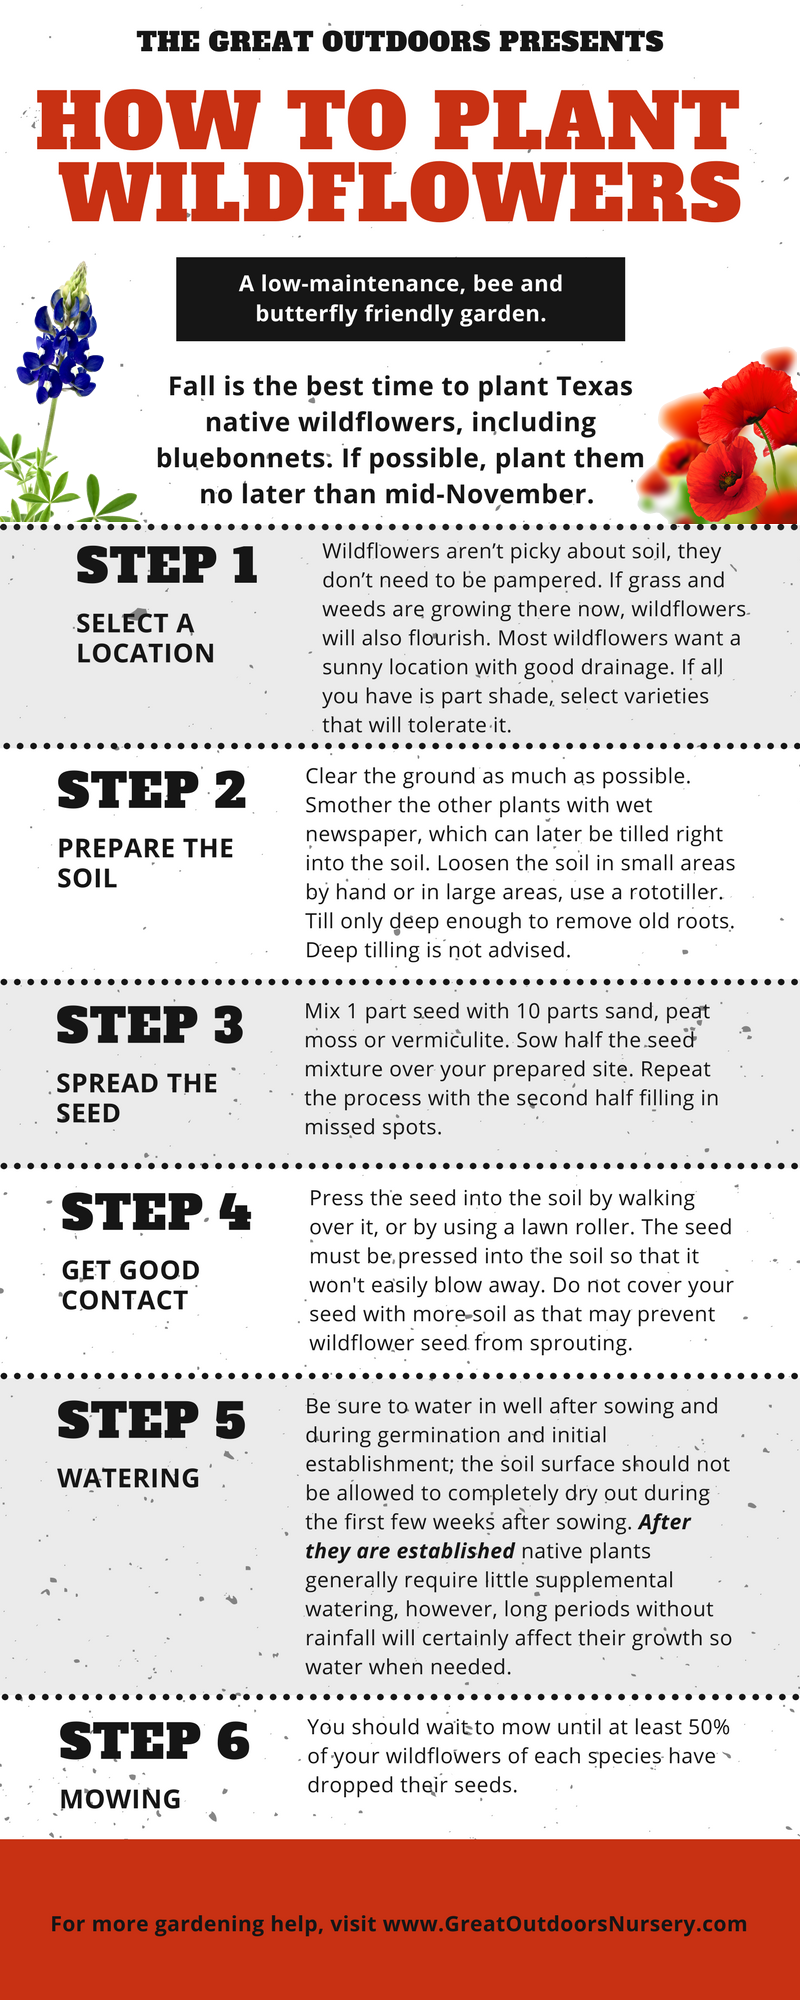 How to plant wildflowers.fw.png